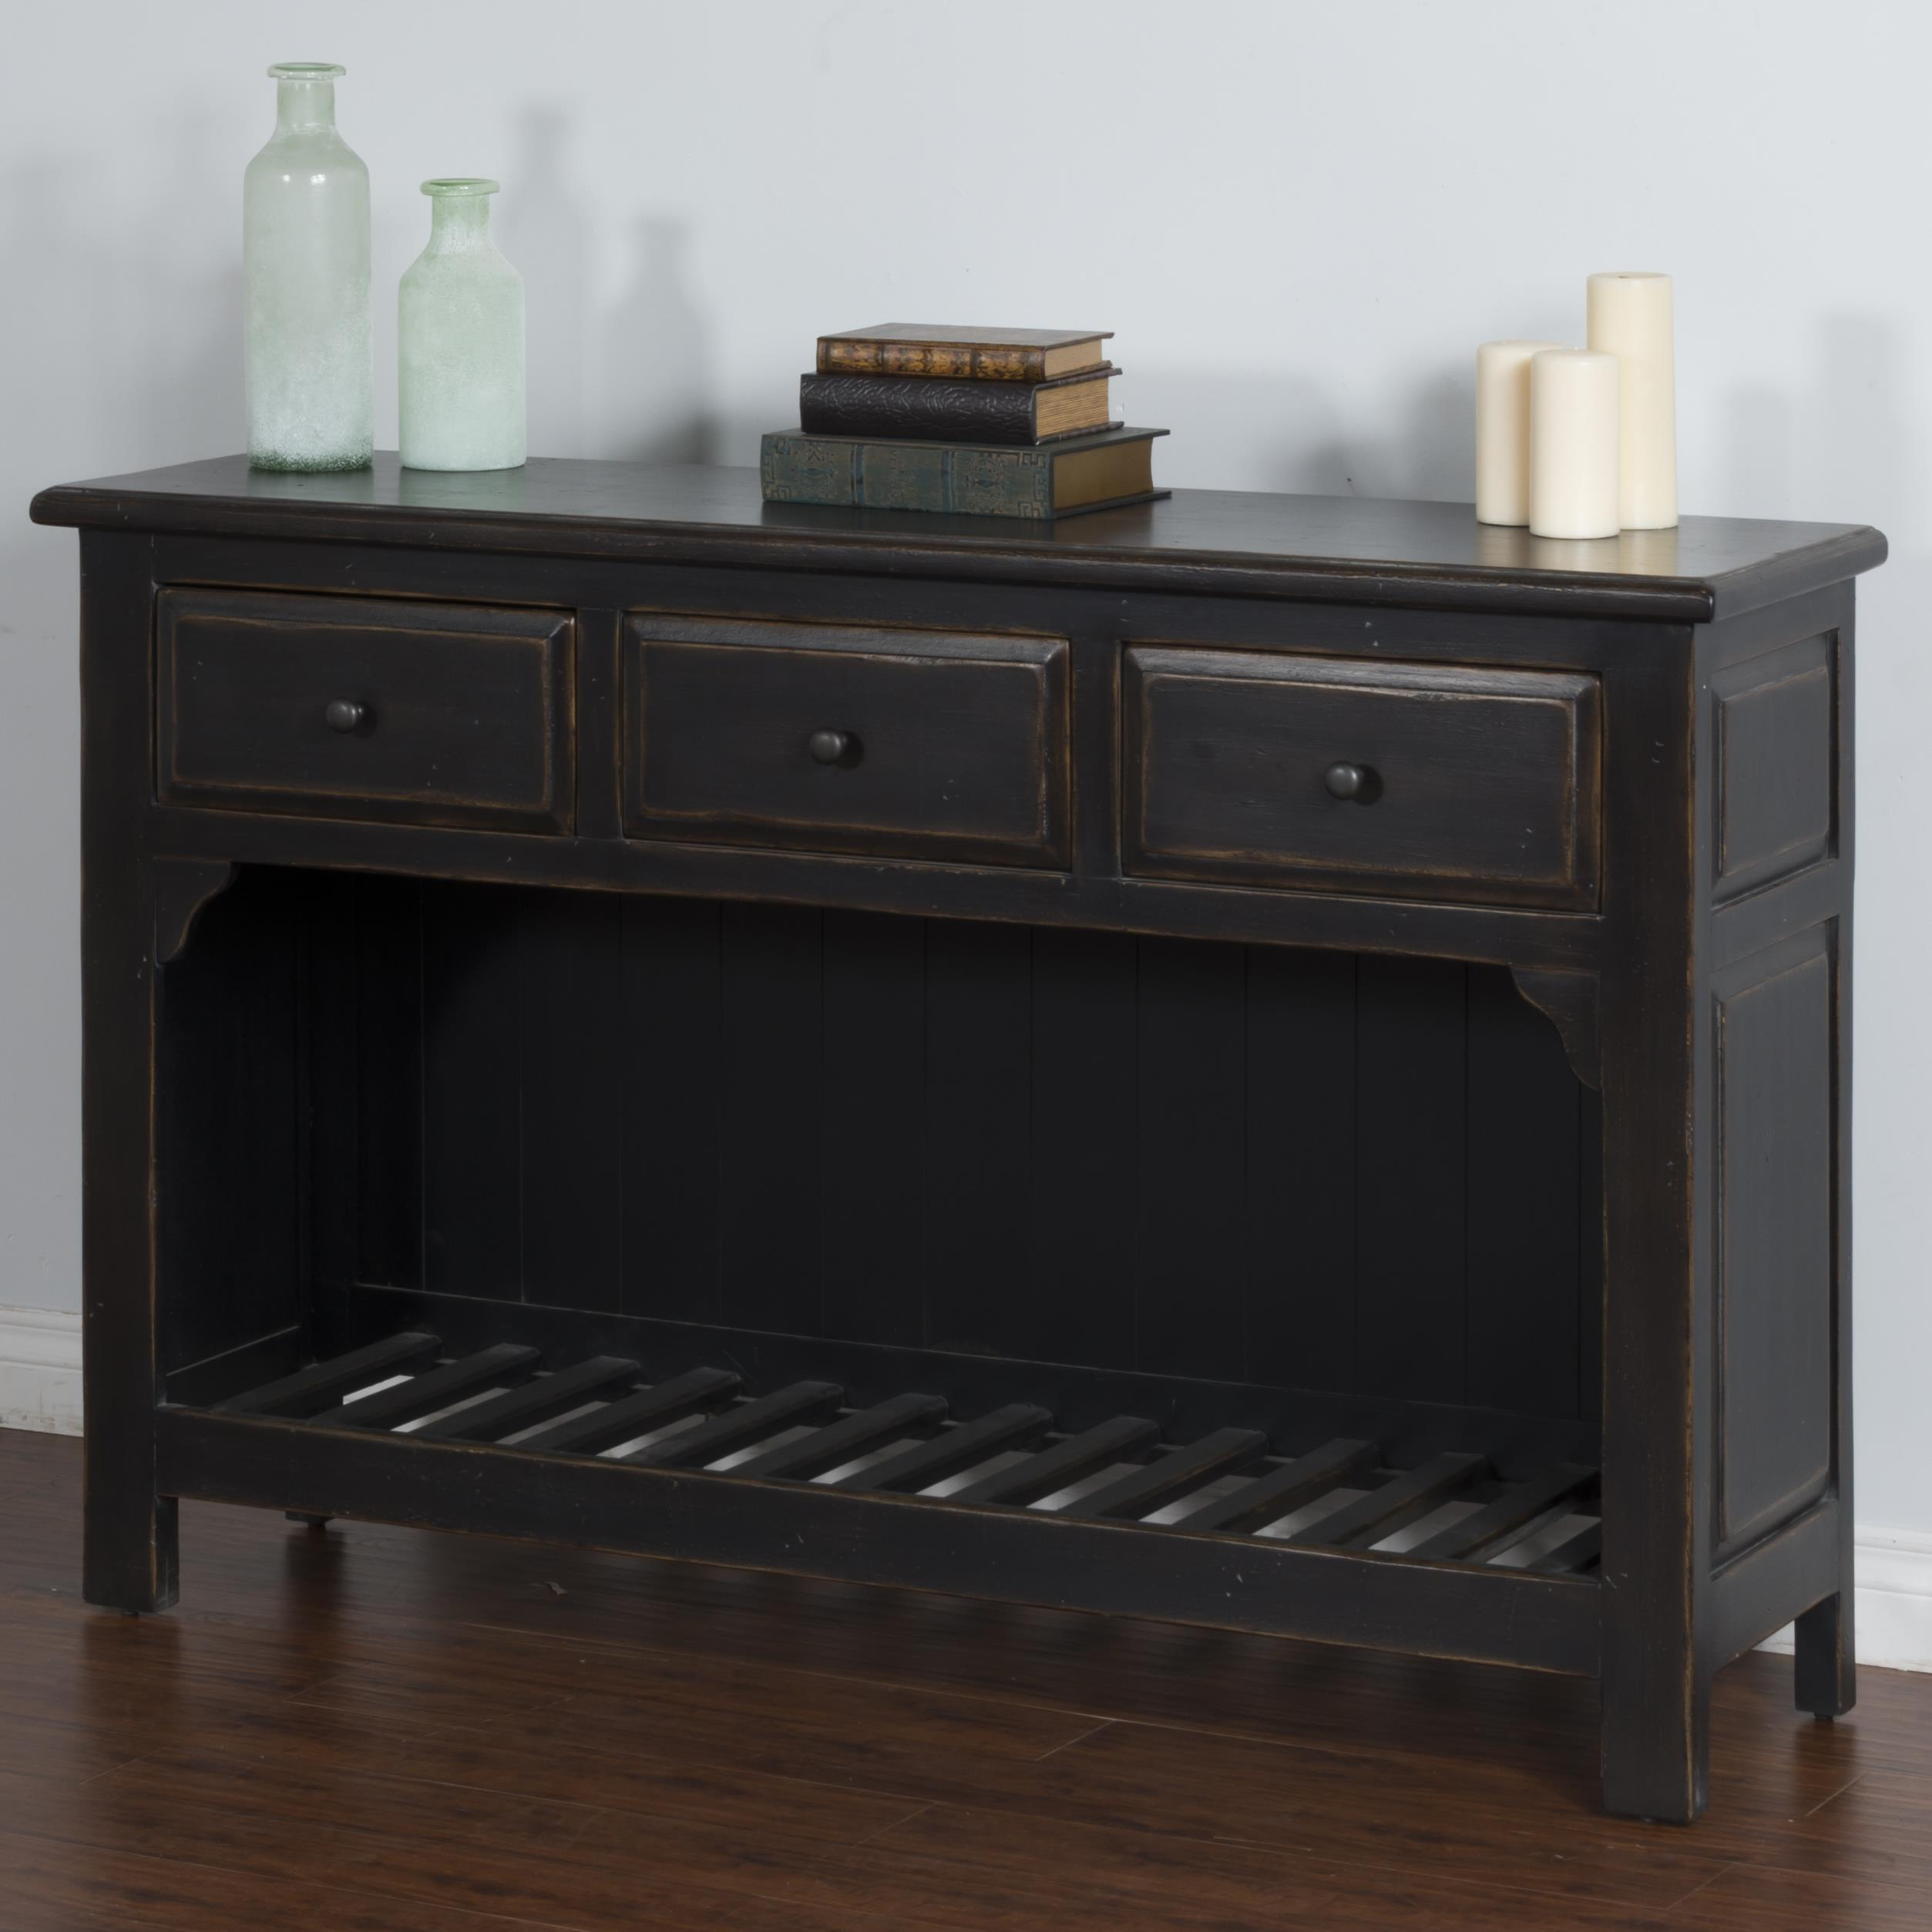 Sunny Designs Black Sofa Table - Item Number: 2271B-S